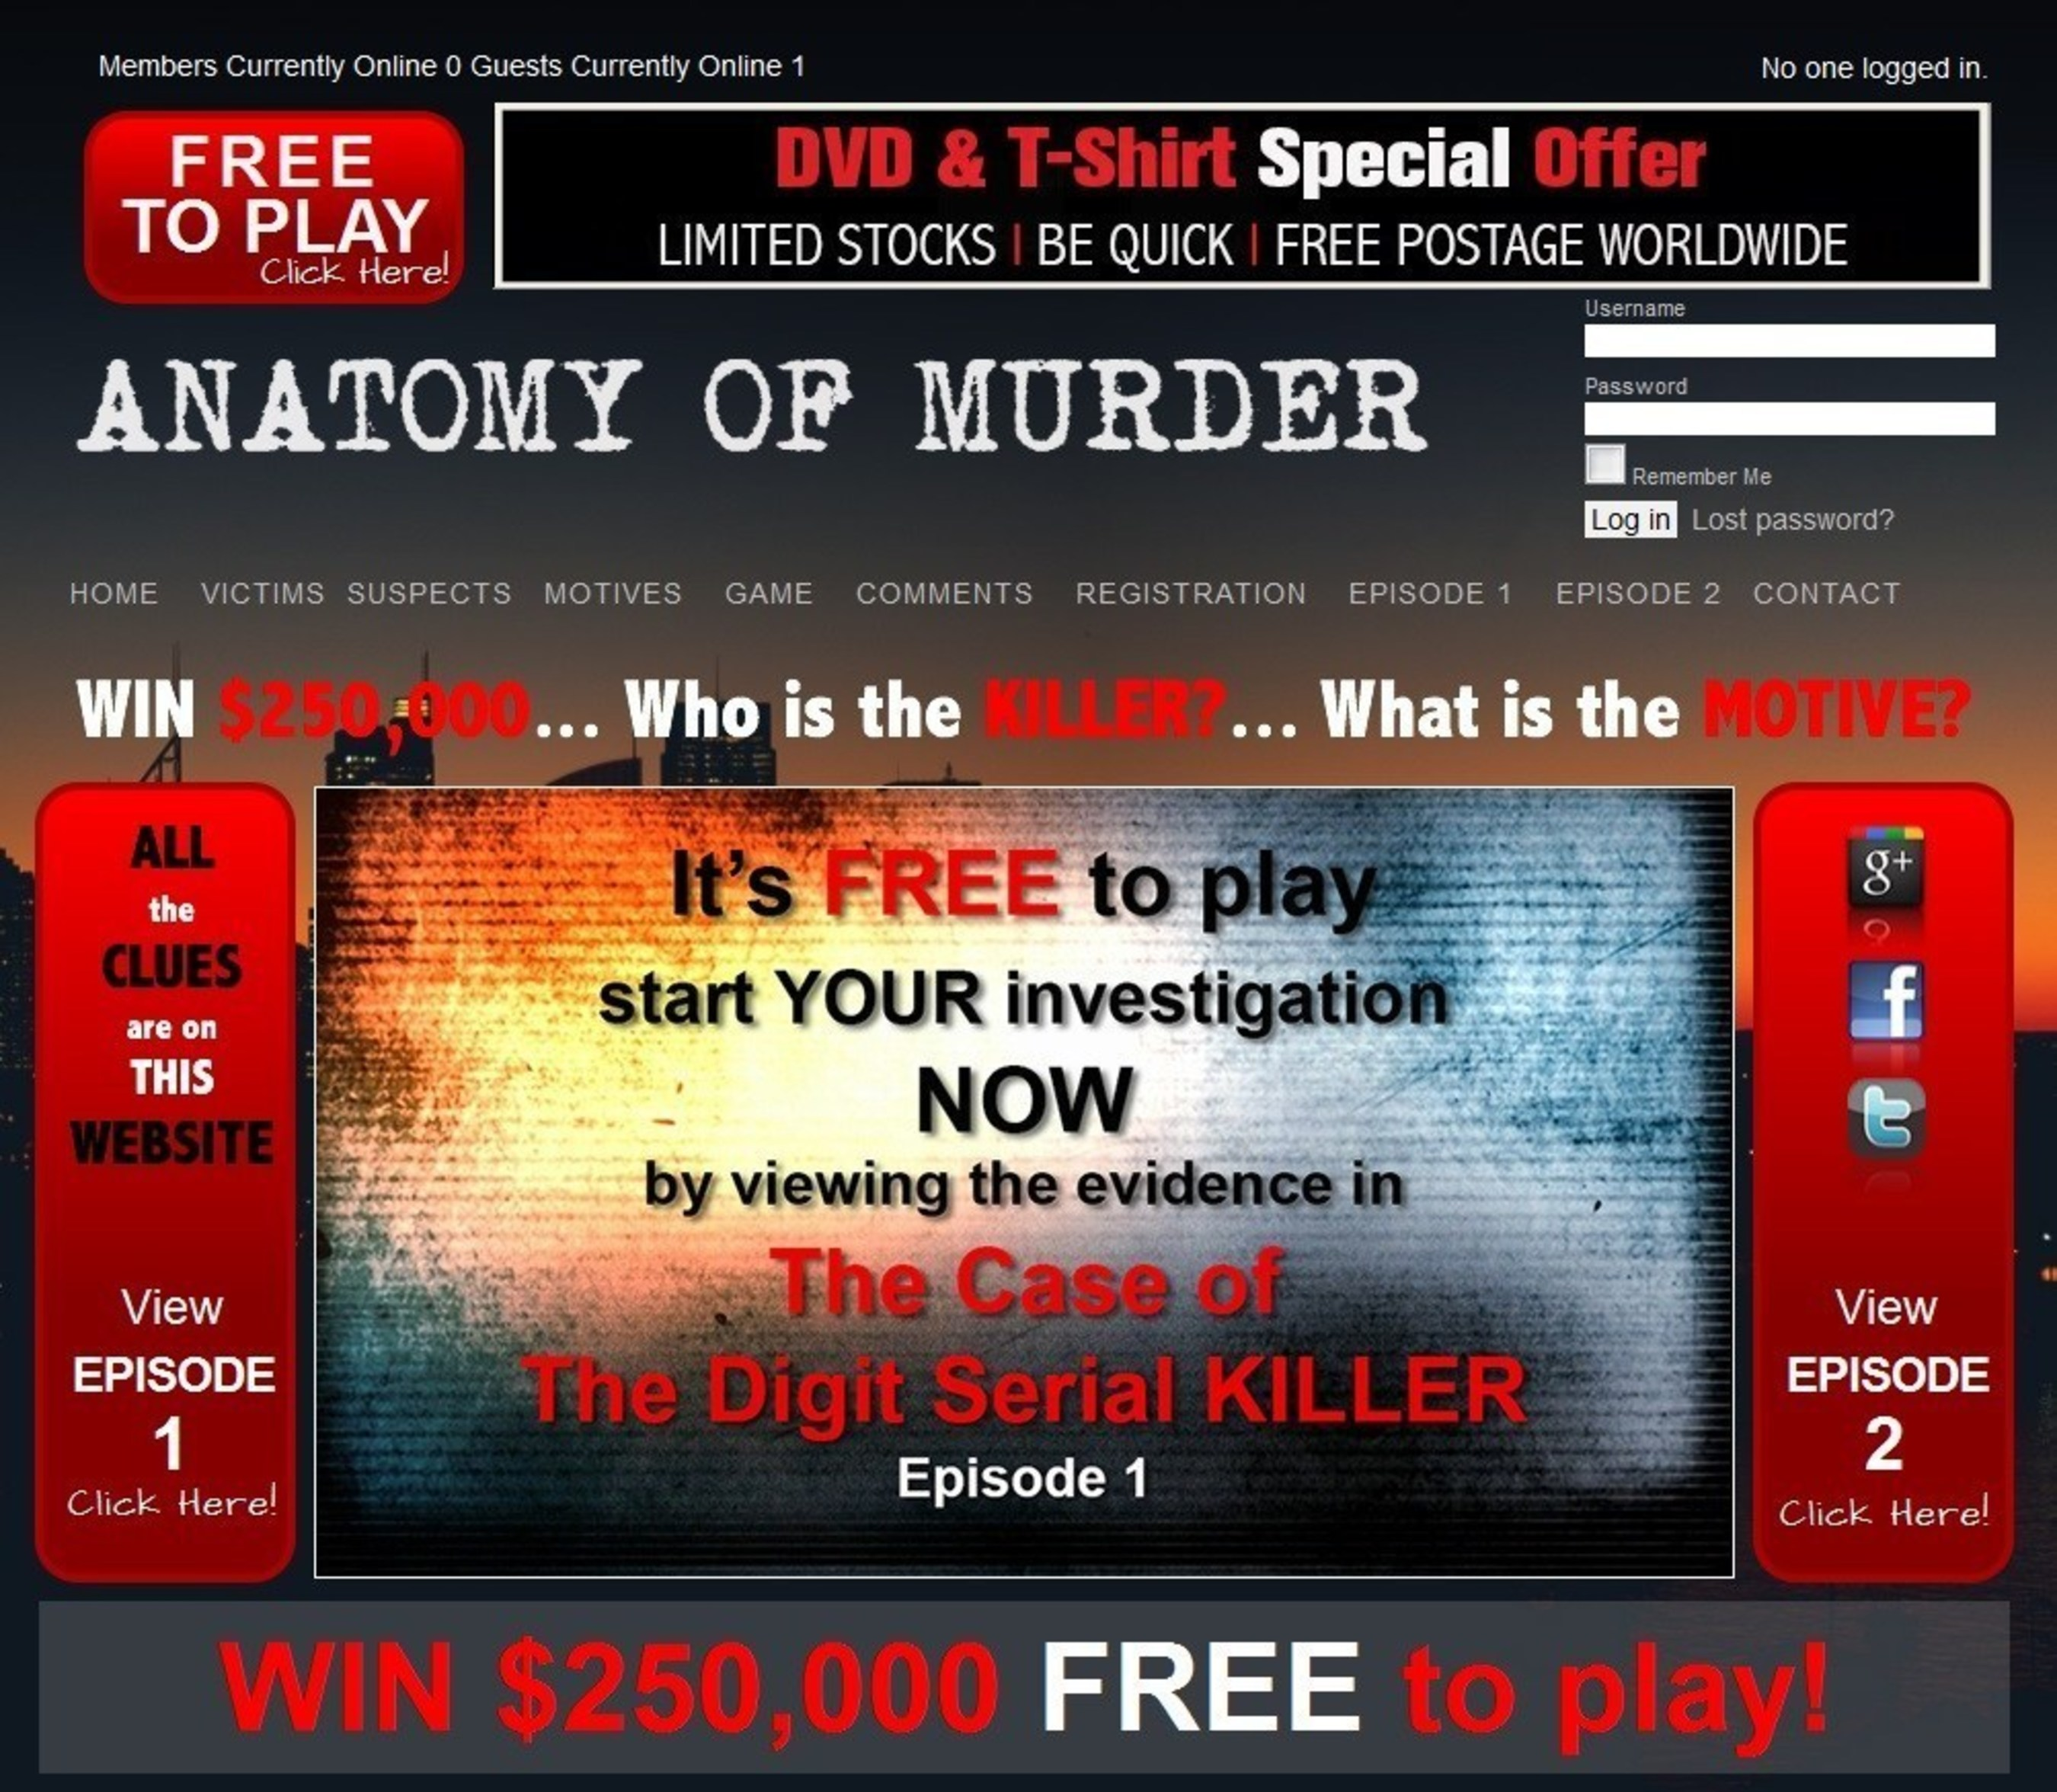 Win $250,000 in a World First Online Murder Mystery Game